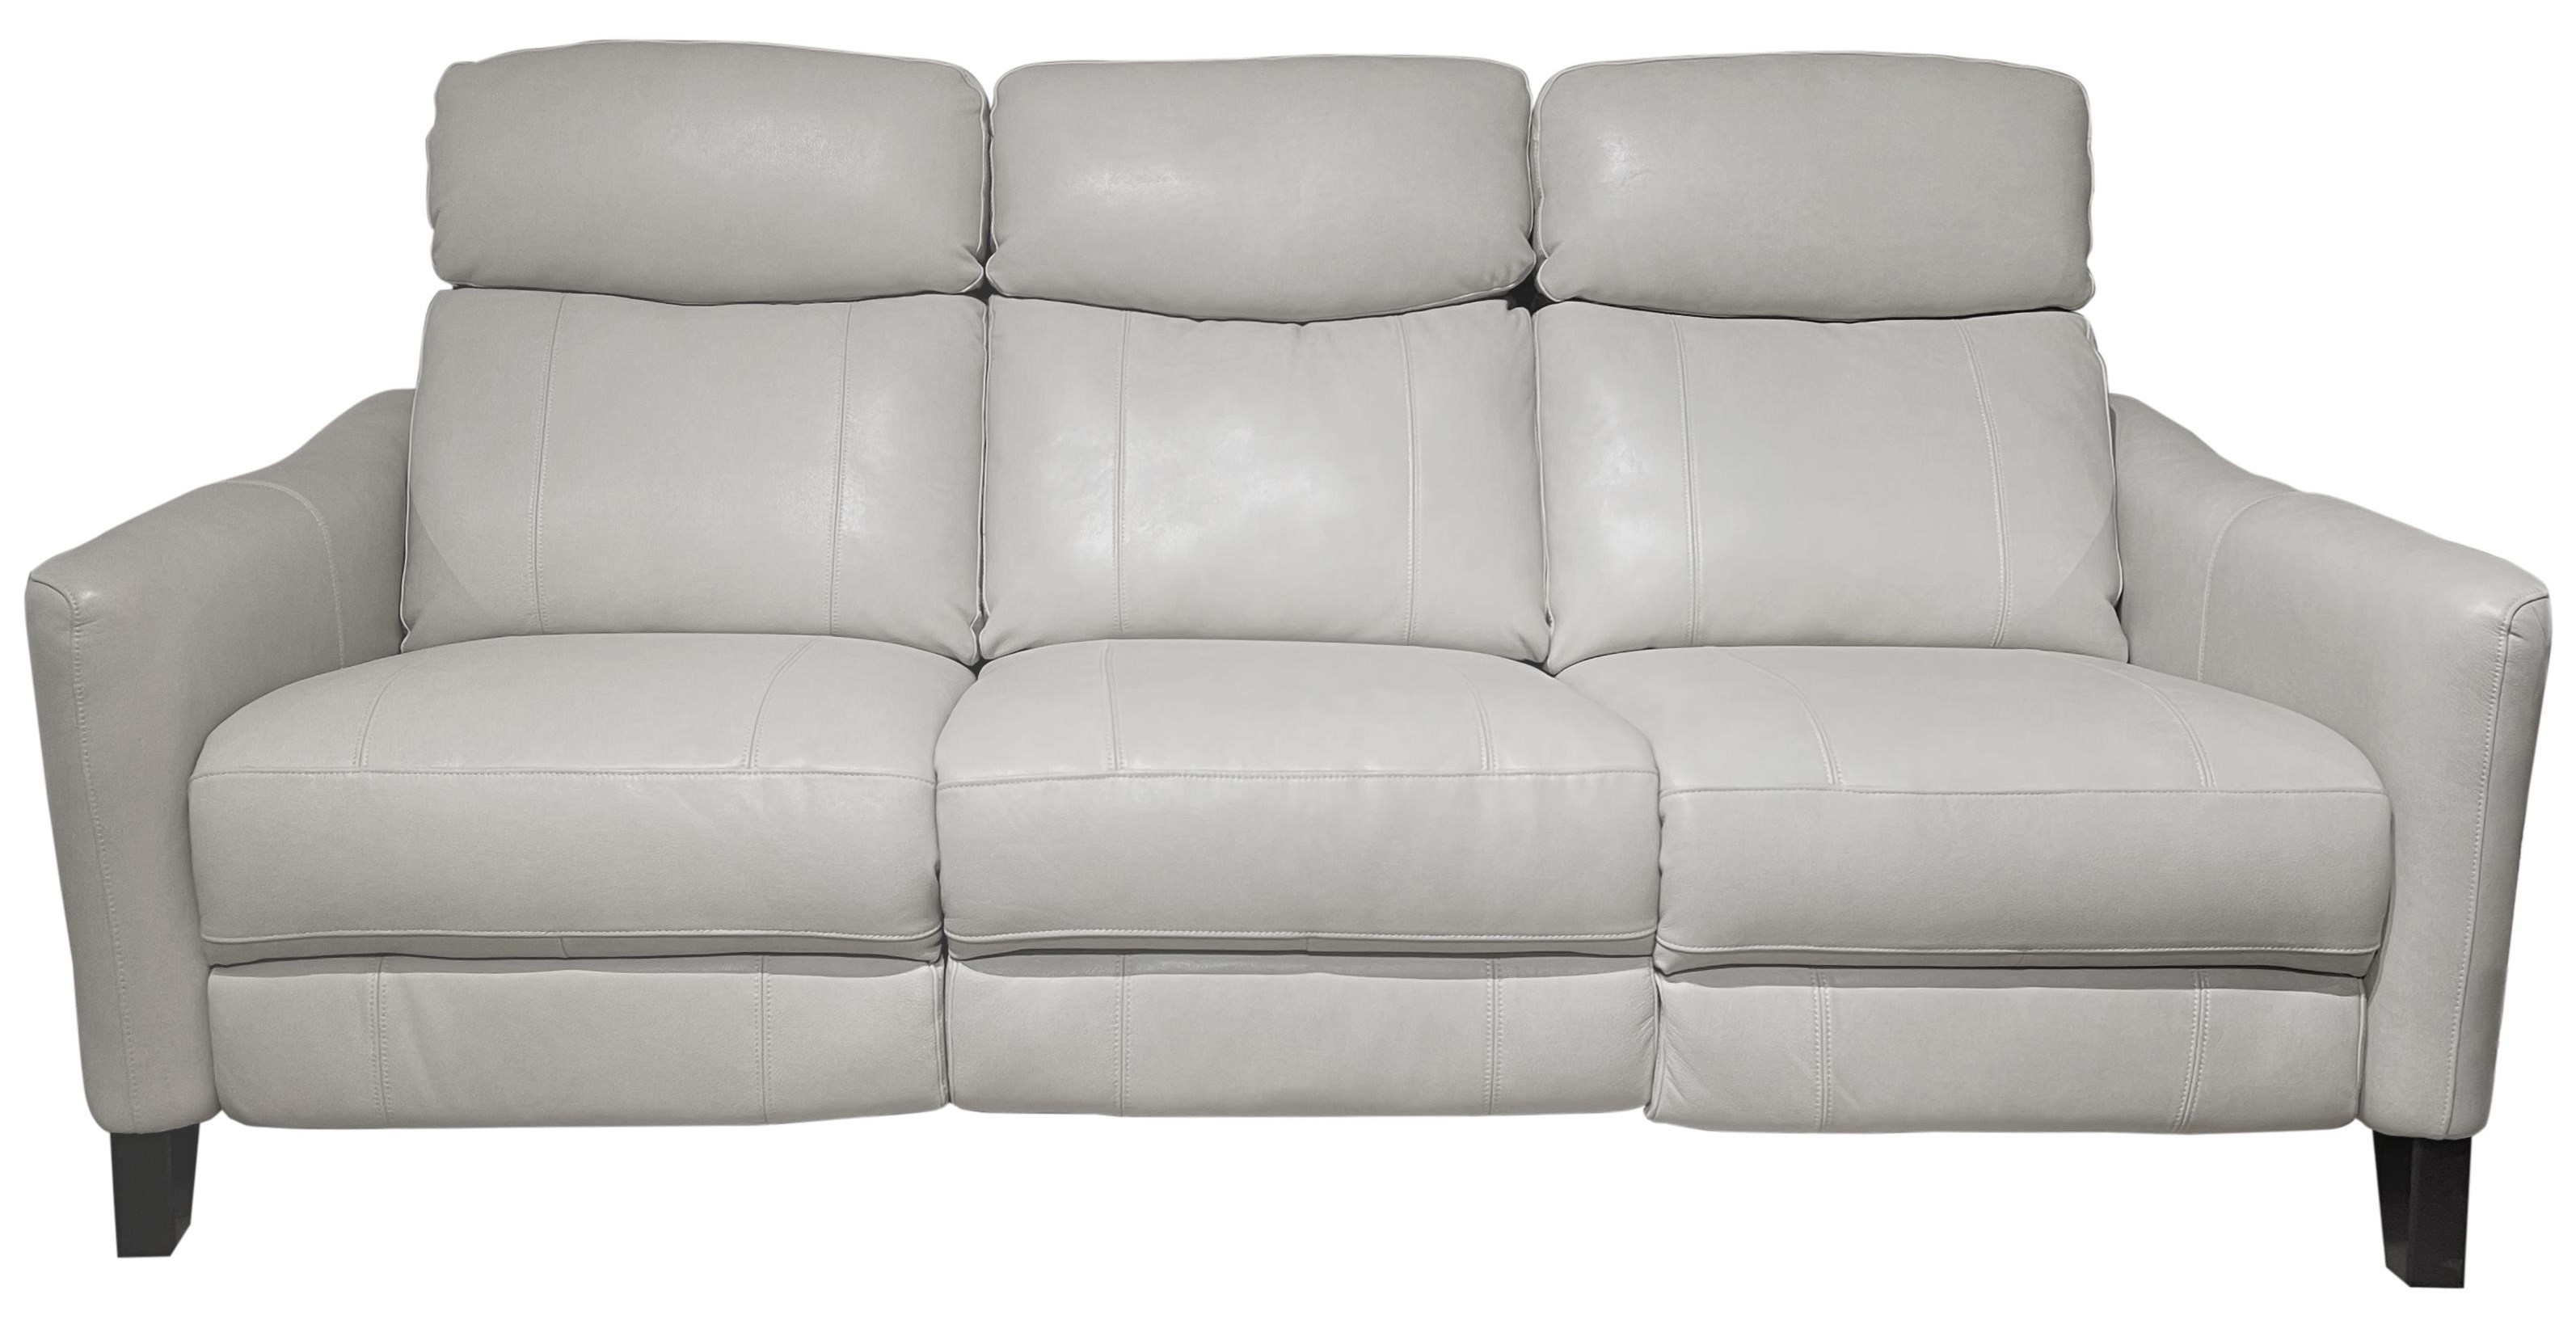 Siegel Power Reclining Sofa by Synergy Home Furnishings at Red Knot